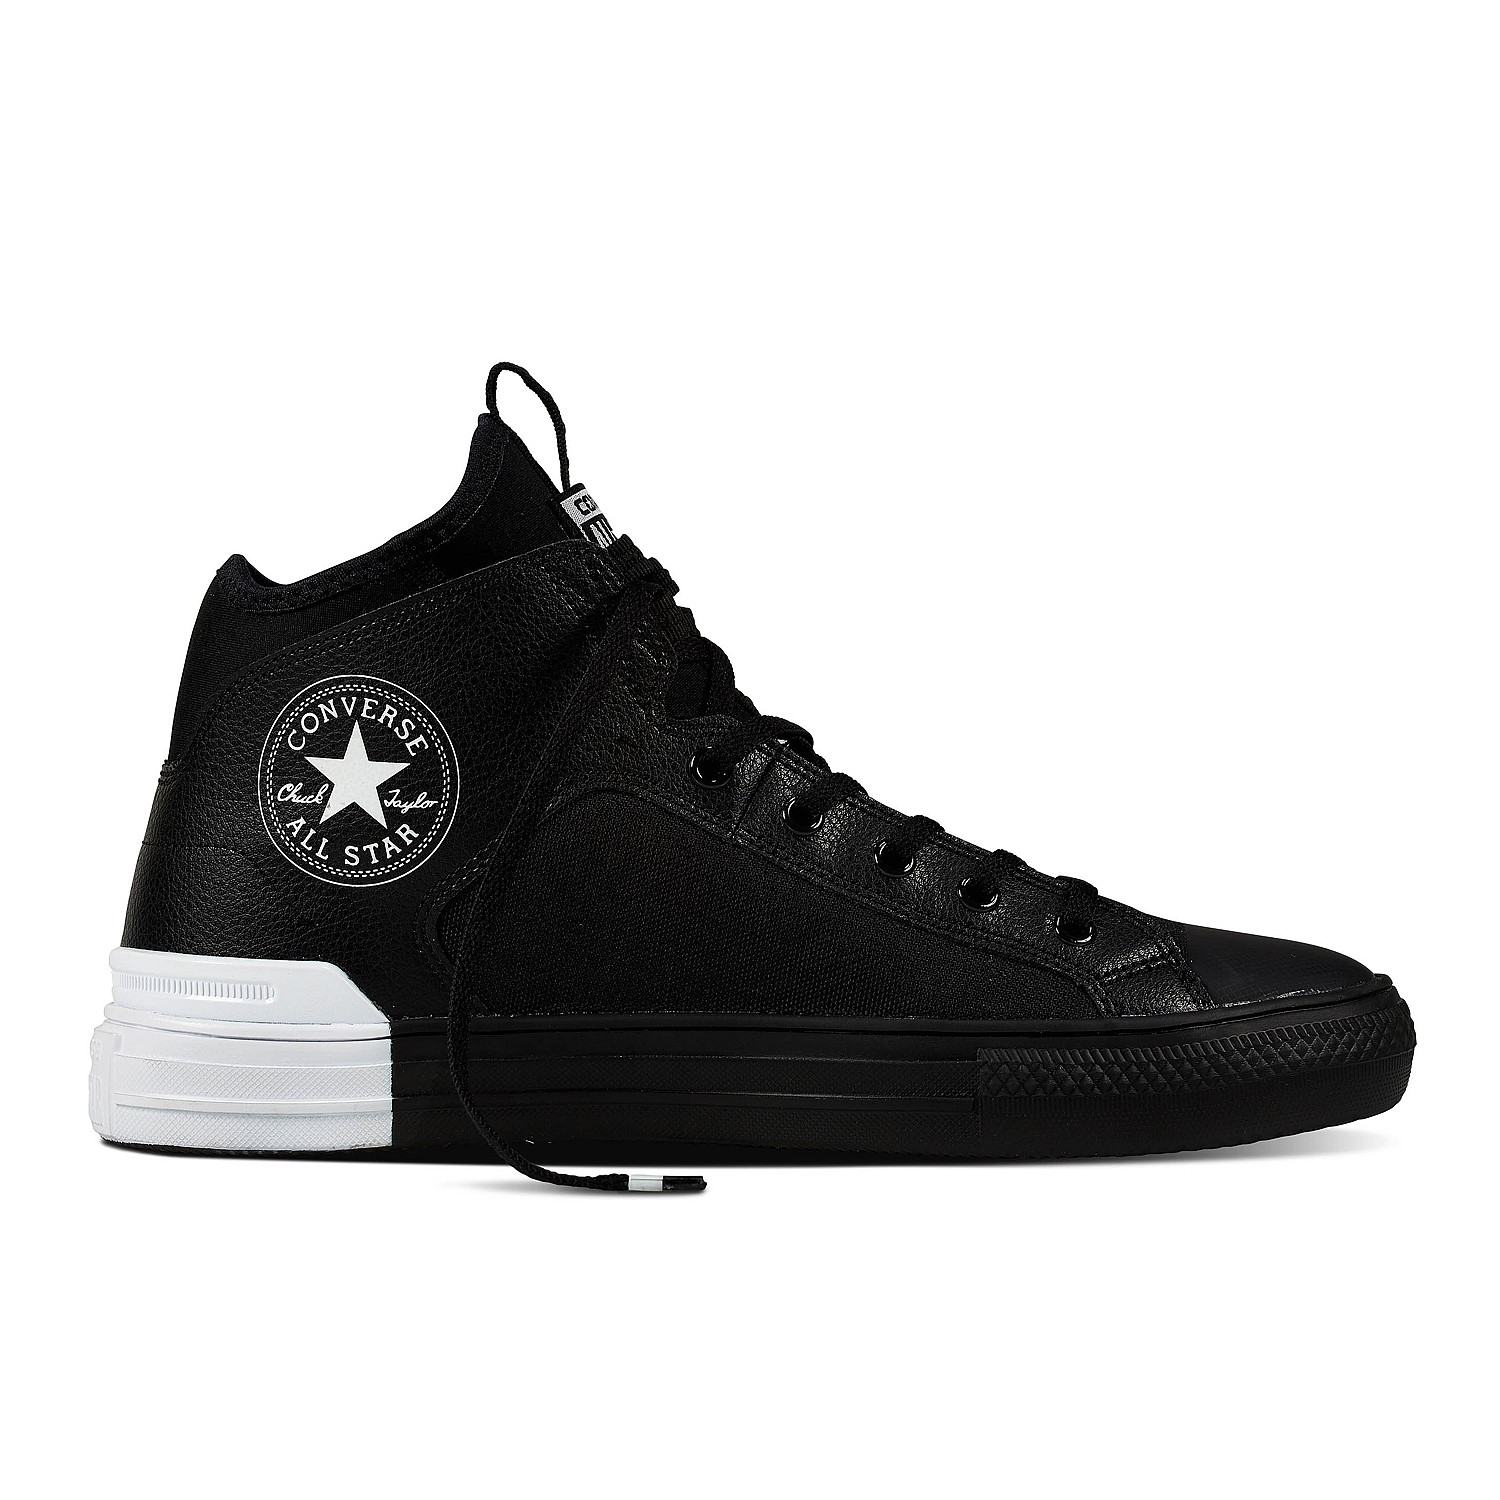 4a2d0da4f Chuck Taylor All Star Ultra Mid Mens